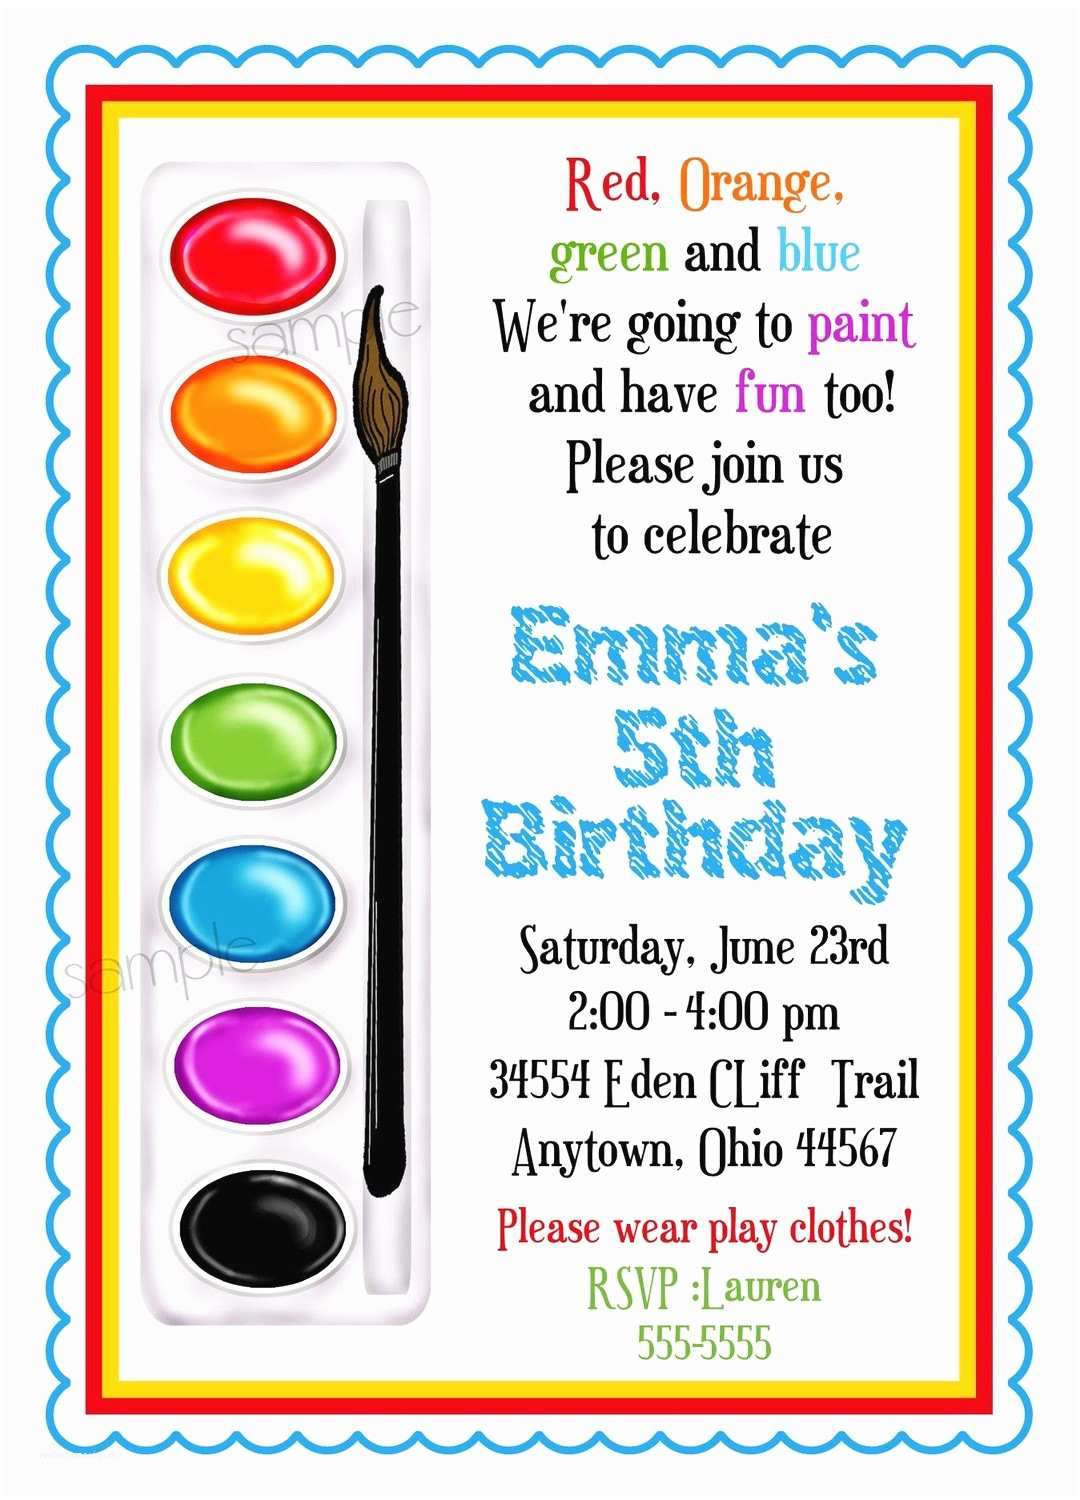 Paint Party Invitations Art Invitations Painting Party Birthday Party Paint Box